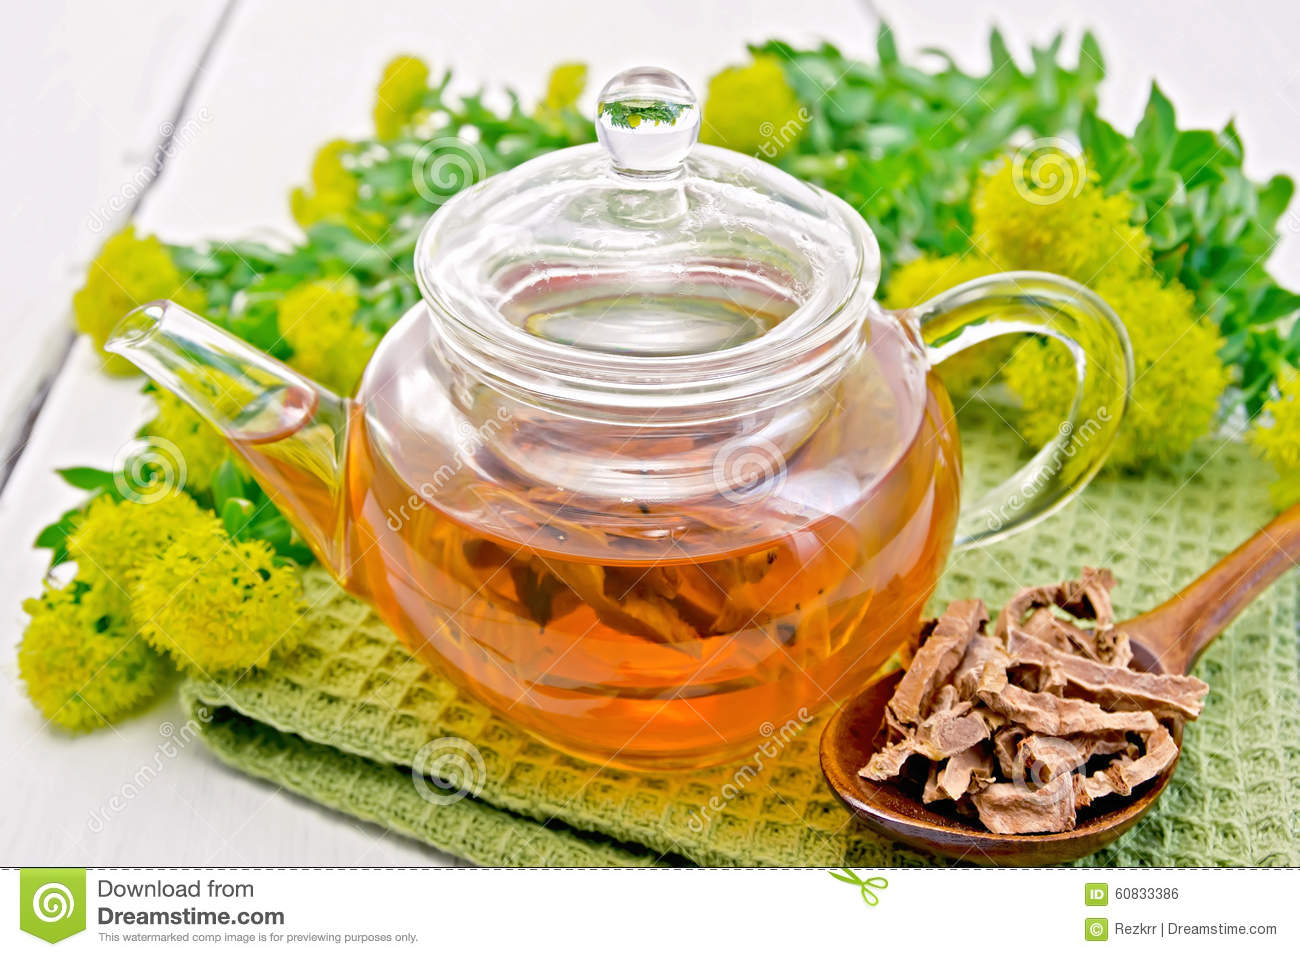 how to make rhodiola tea